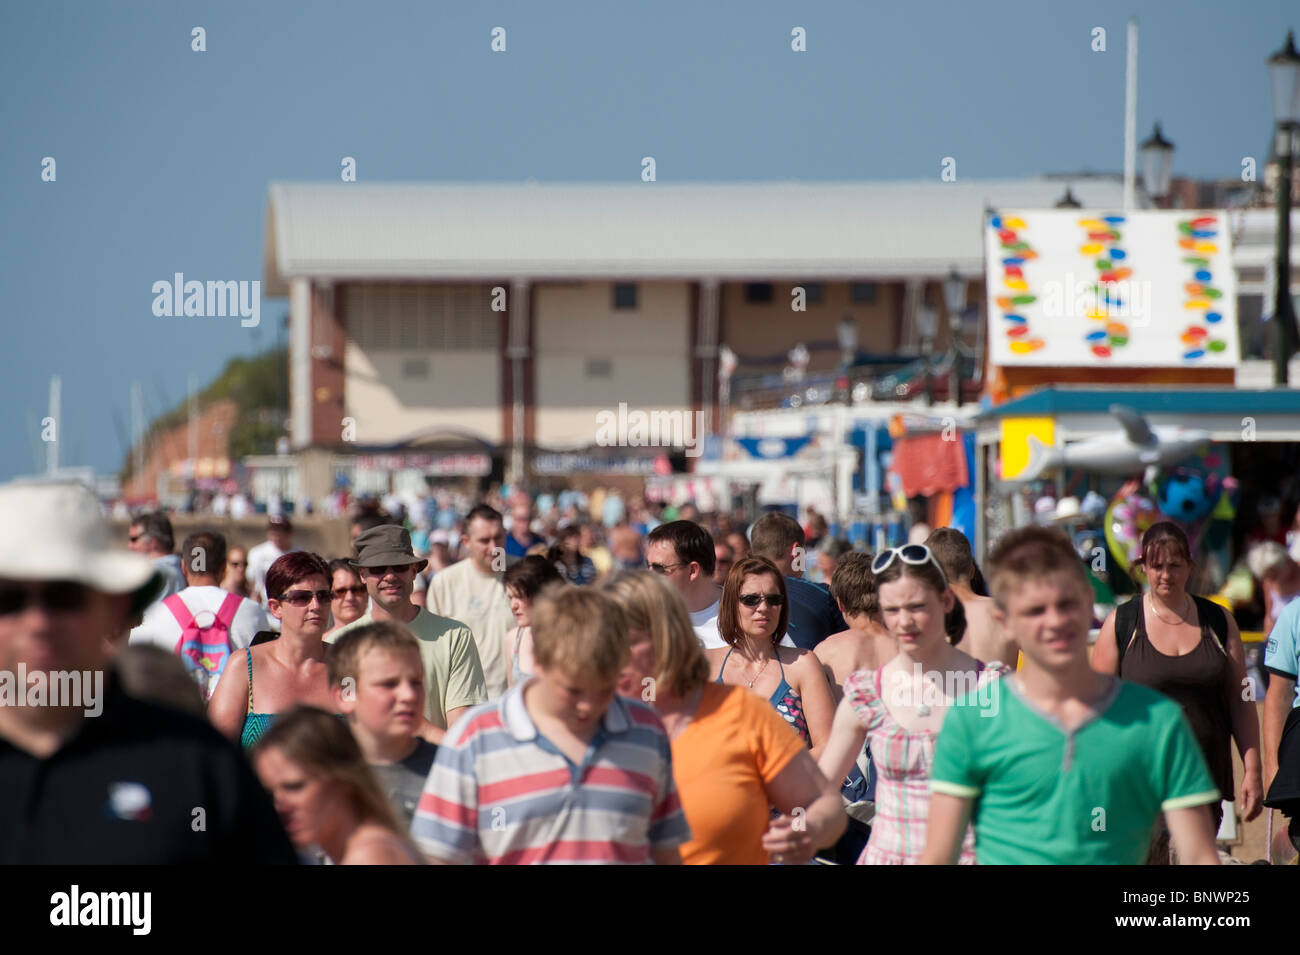 Crowds of holidaymakers enjpying a hot summers day in the English seaside resort of Hunstanton in East Anglia. - Stock Image